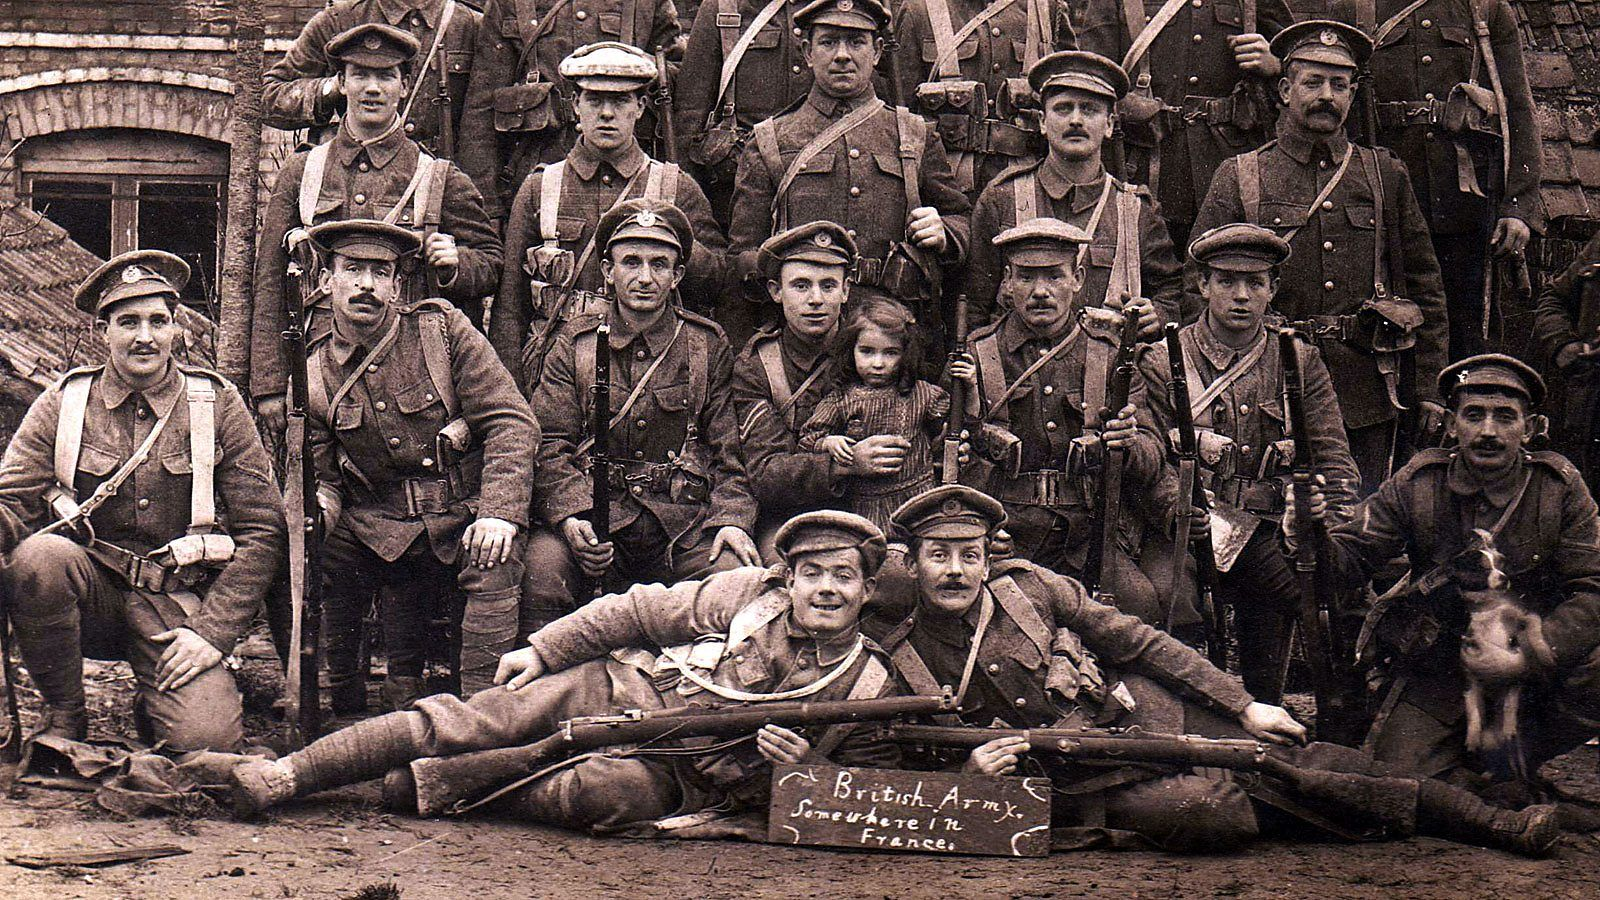 Facts About Wwi British Army